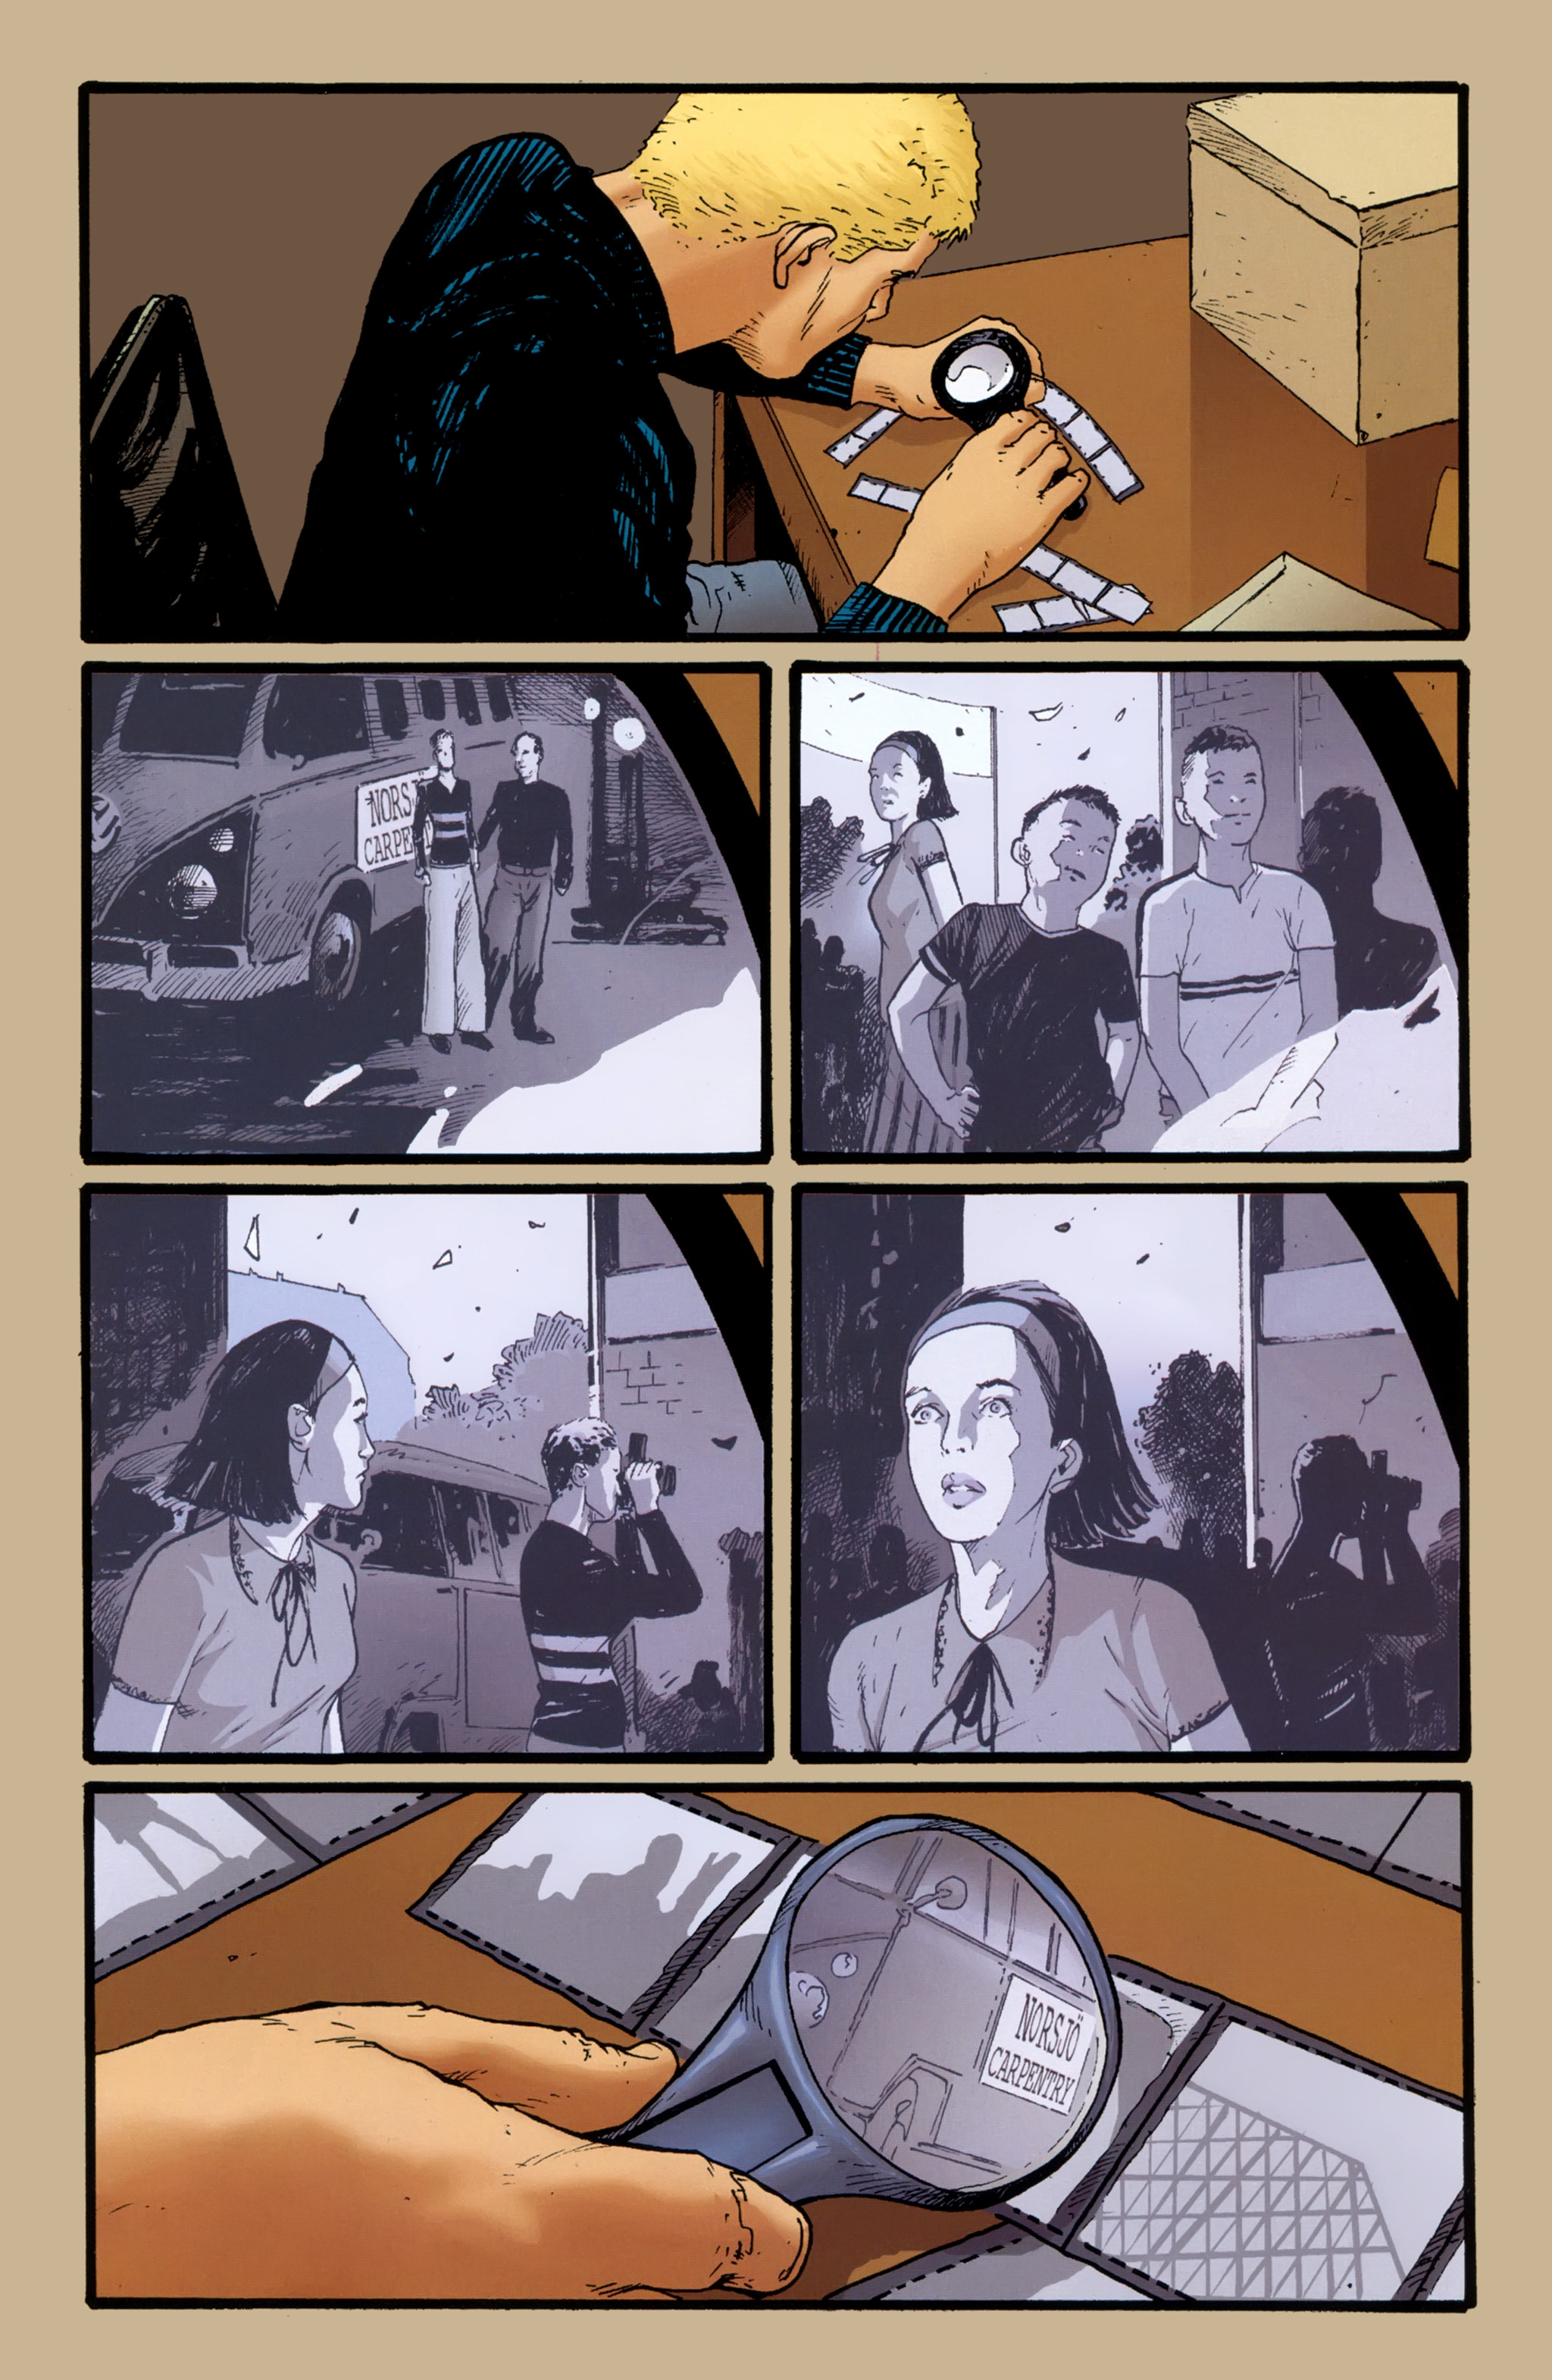 Read online The Girl With the Dragon Tattoo comic -  Issue # TPB 2 - 28